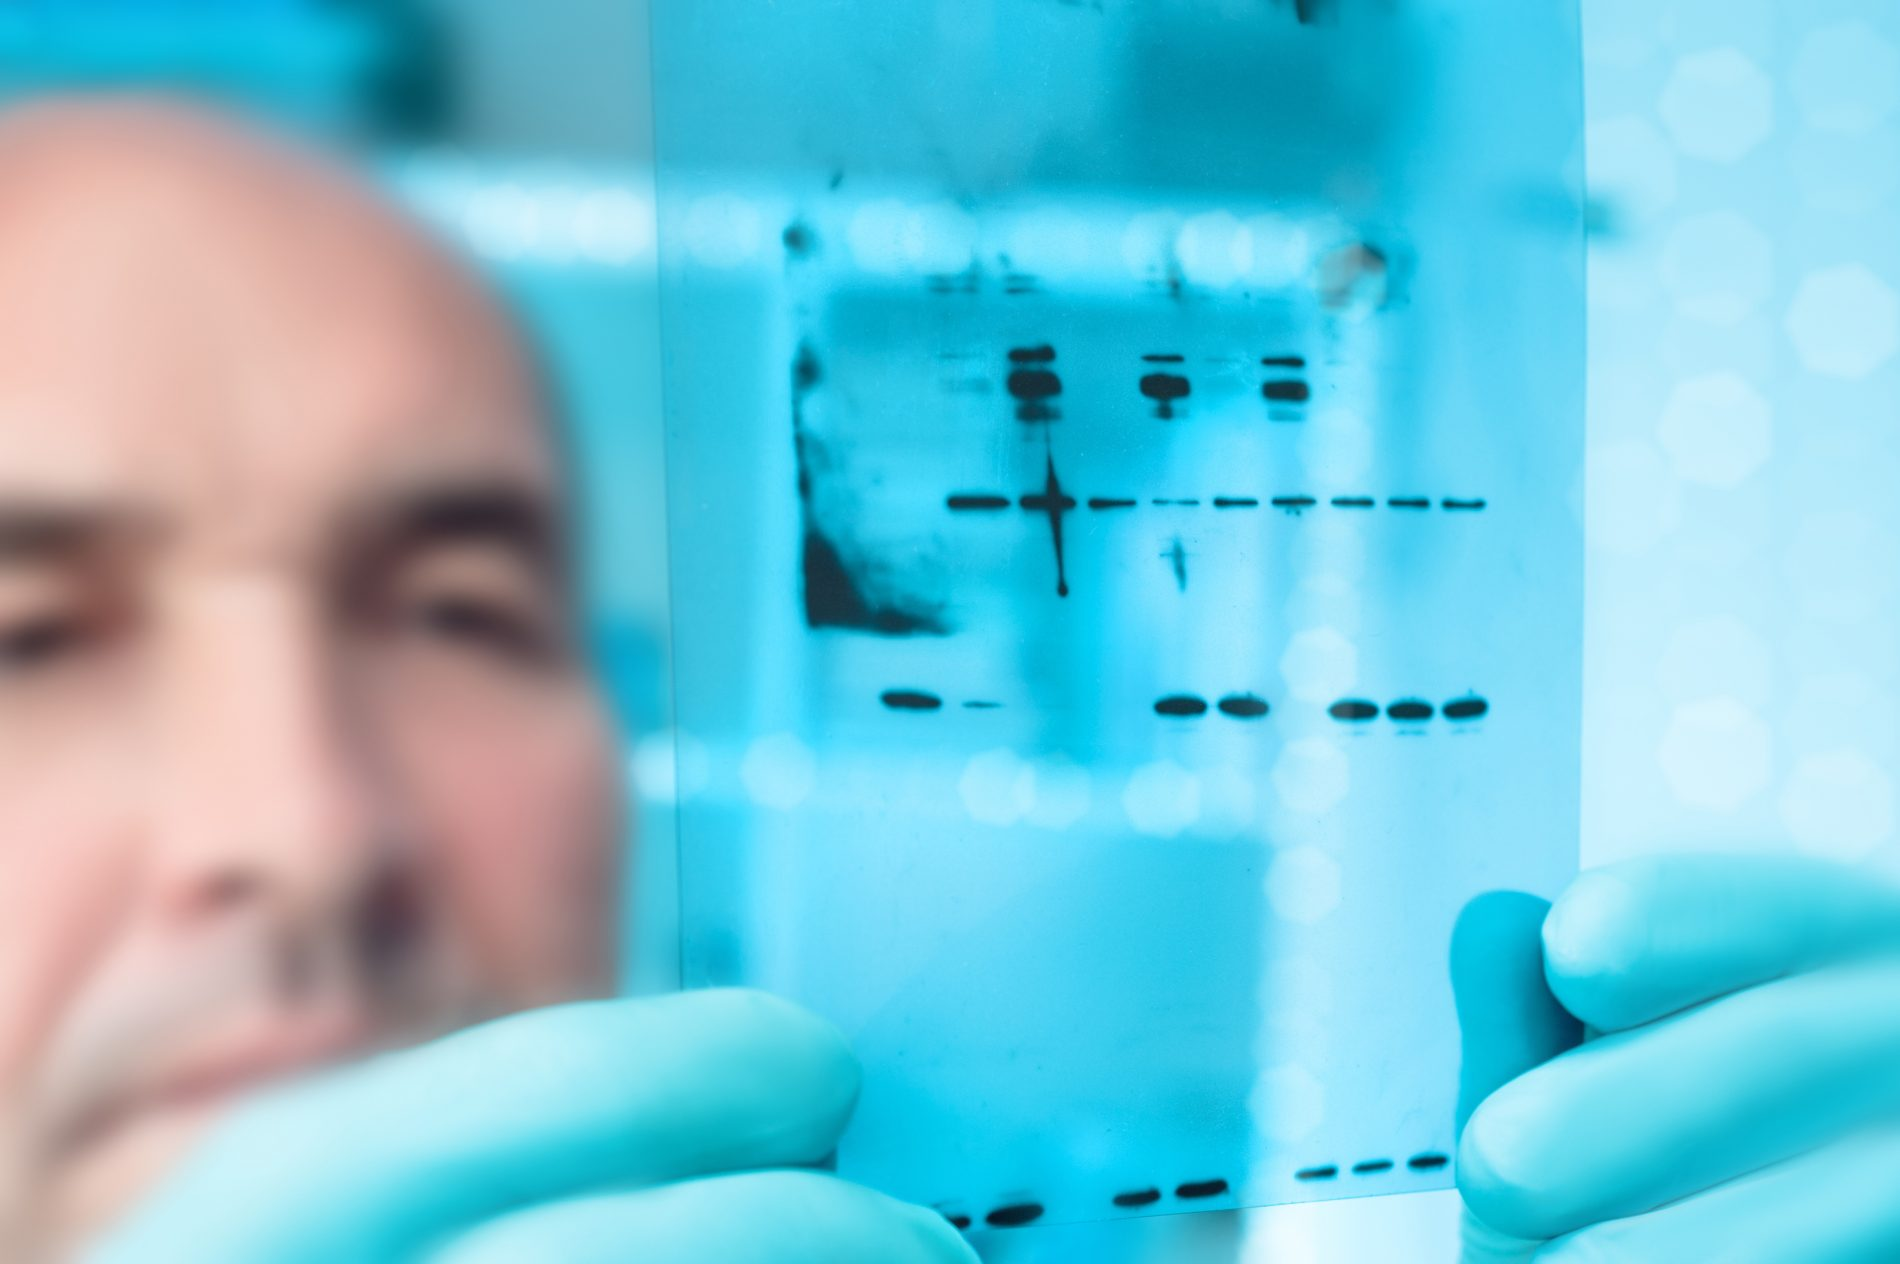 Biotech expert looks at western blot of recombinant proteins.